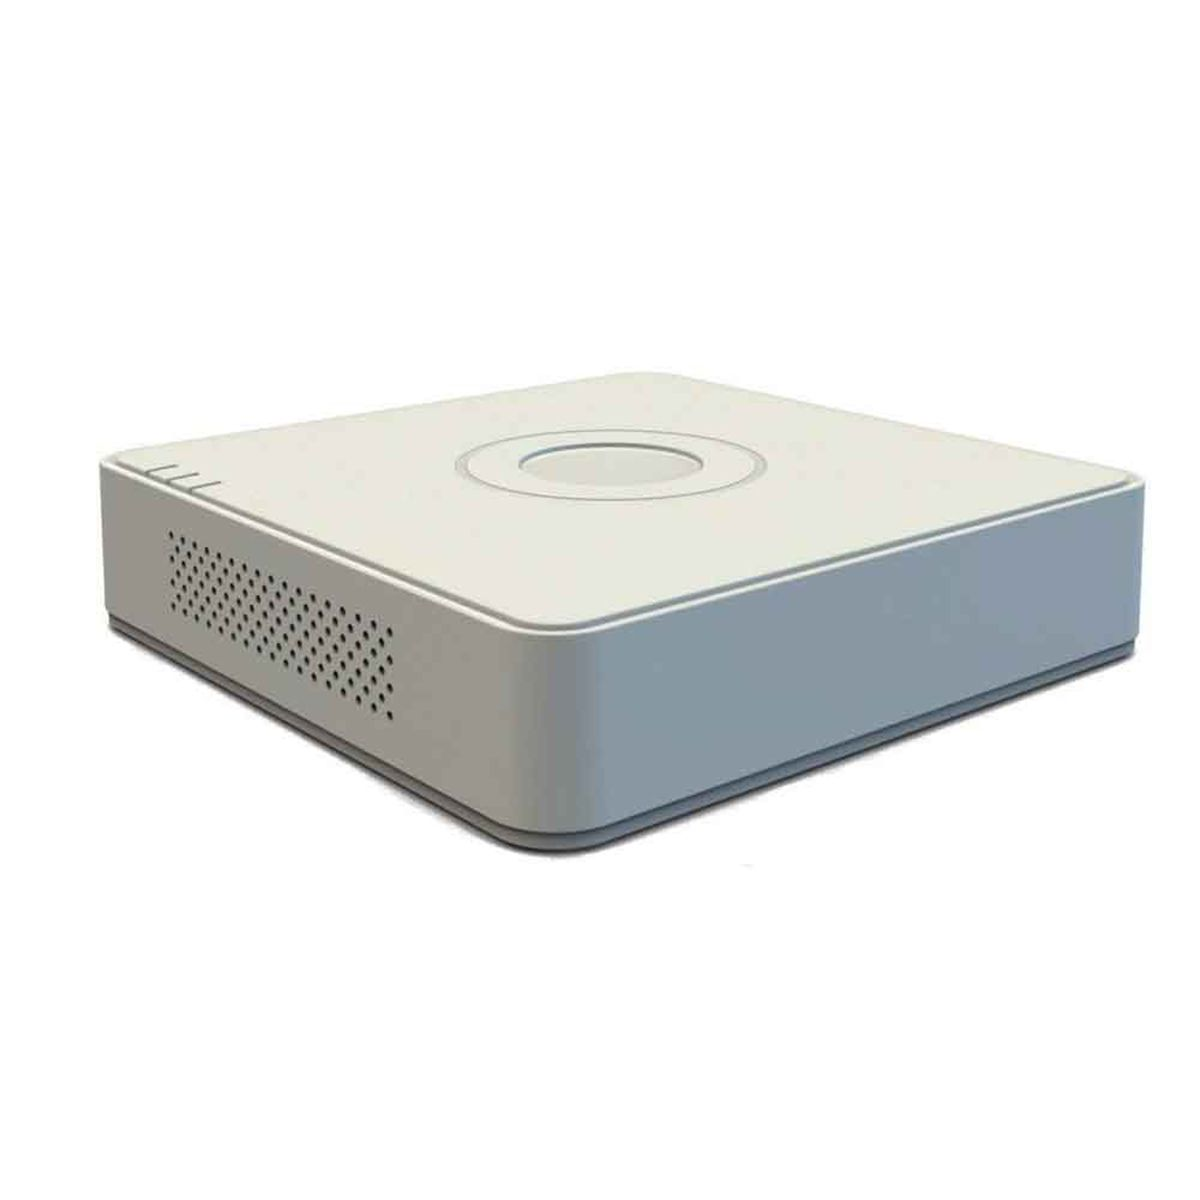 DVR Hikvision 16 canales DS-7116HQHI-F1/N